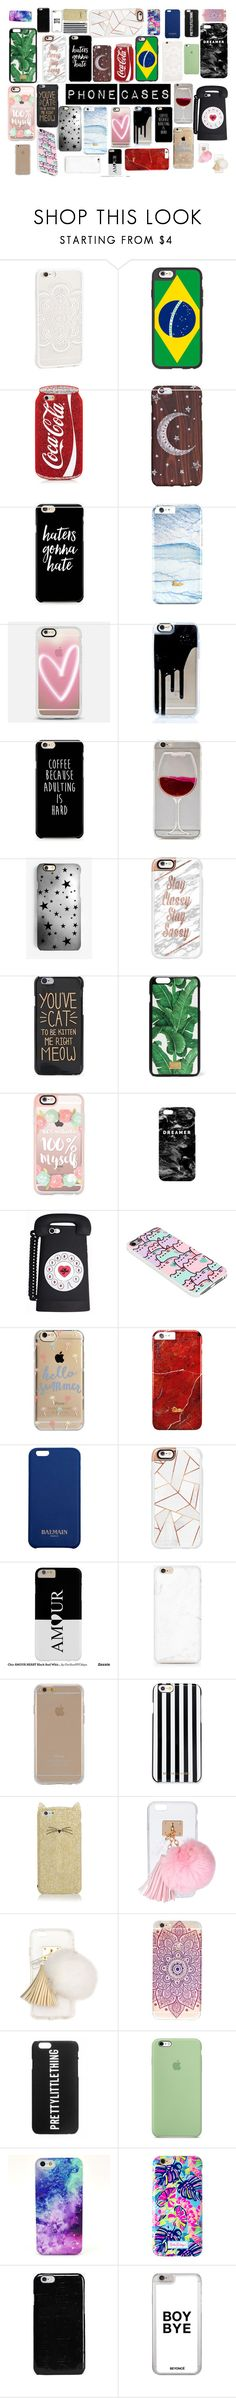 """Iphone cases"" by officialajaxxx ❤ liked on Polyvore featuring JFR, Casetify, Wet Seal, Rianna Phillips, Dolce&Gabbana, Mr. Gugu & Miss Go, Pusheen, Agent 18, Balmain and MICHAEL Michael Kors"